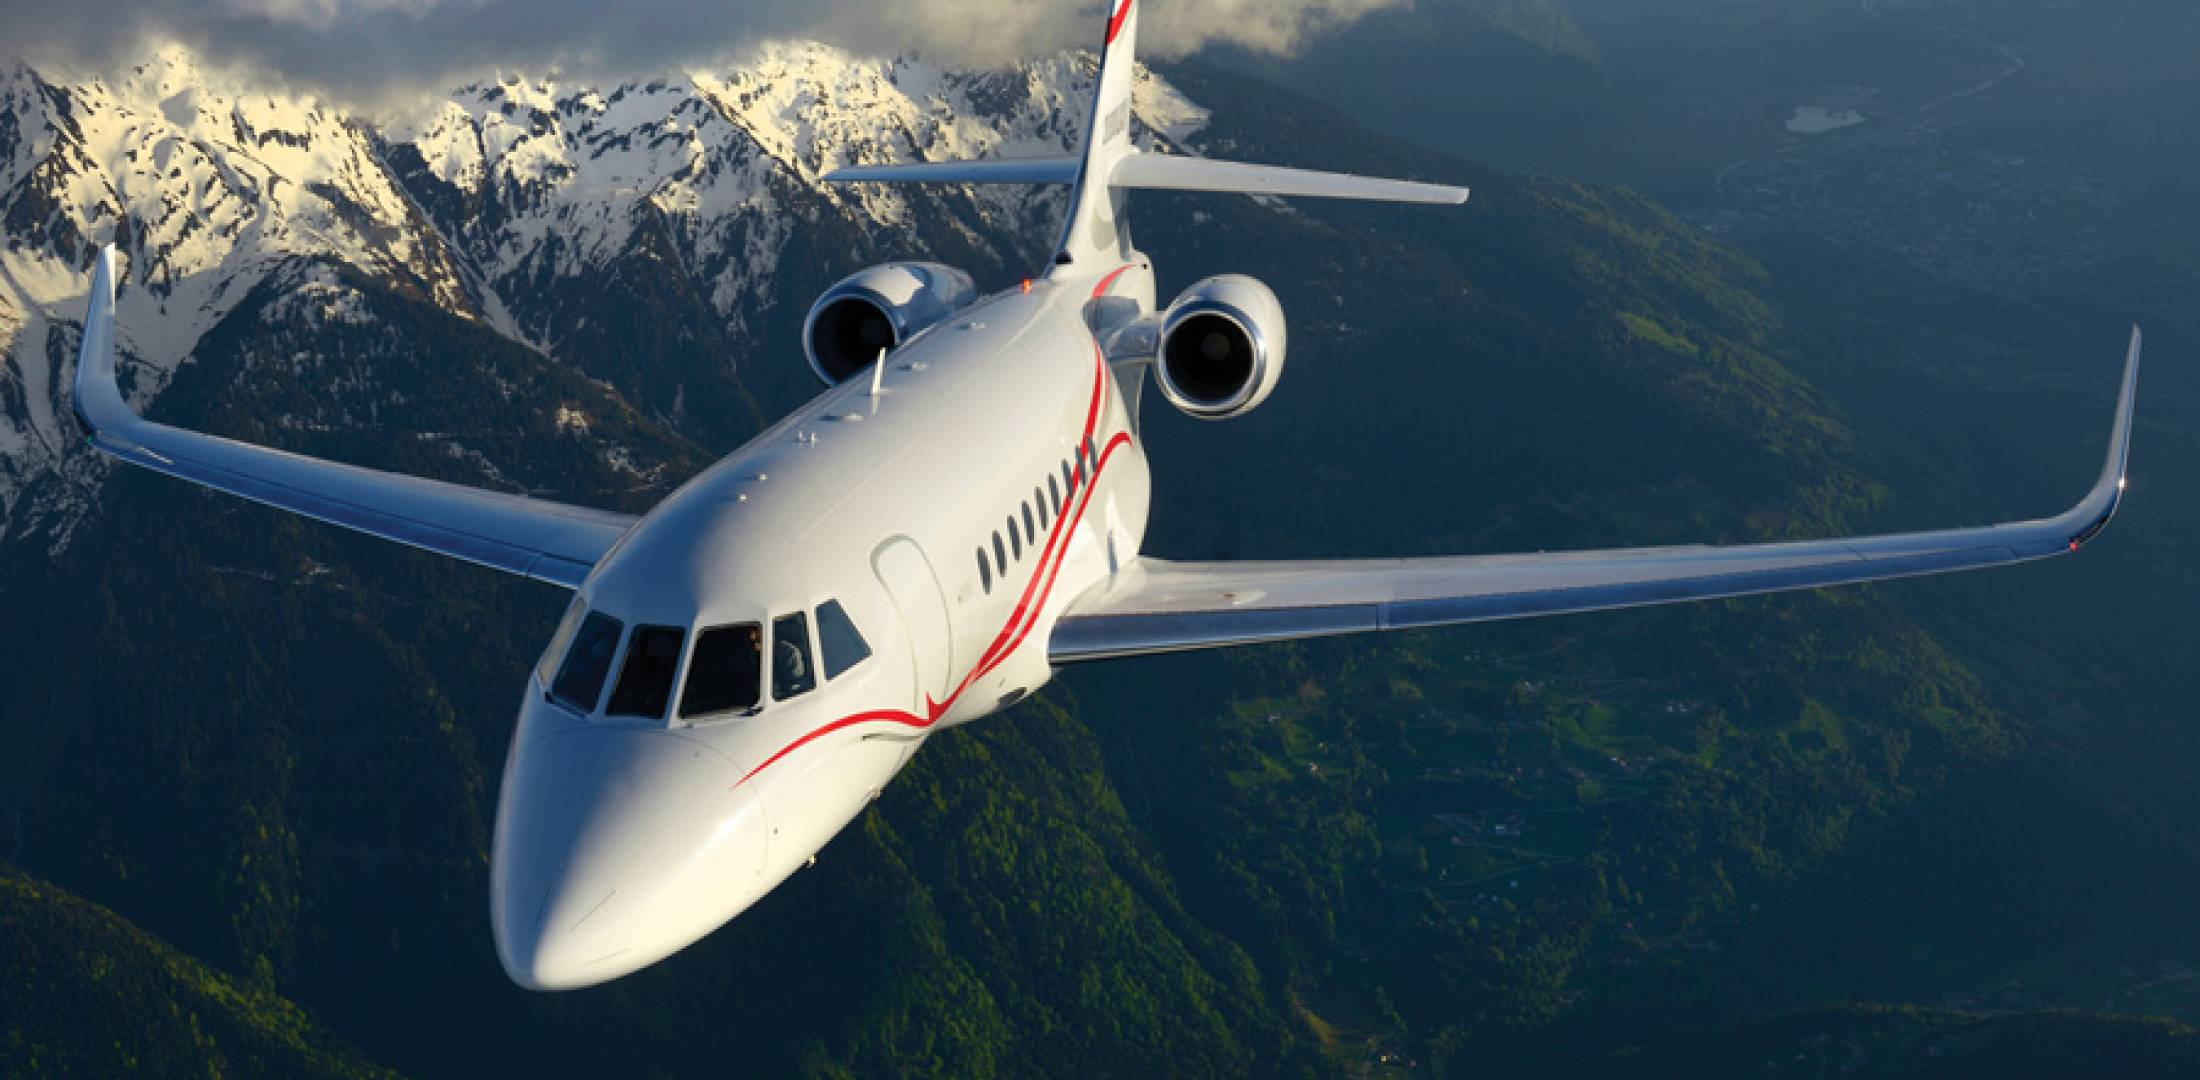 Dassault's new, widebody Falcon 2000LXS is designed with forward-edge wing slats that offer a reduction in Vref speed to 107 knots, a 4,675-foot takeoff distance and 2,300 feet for landing. Sticker price is expected to be $32.8 million.